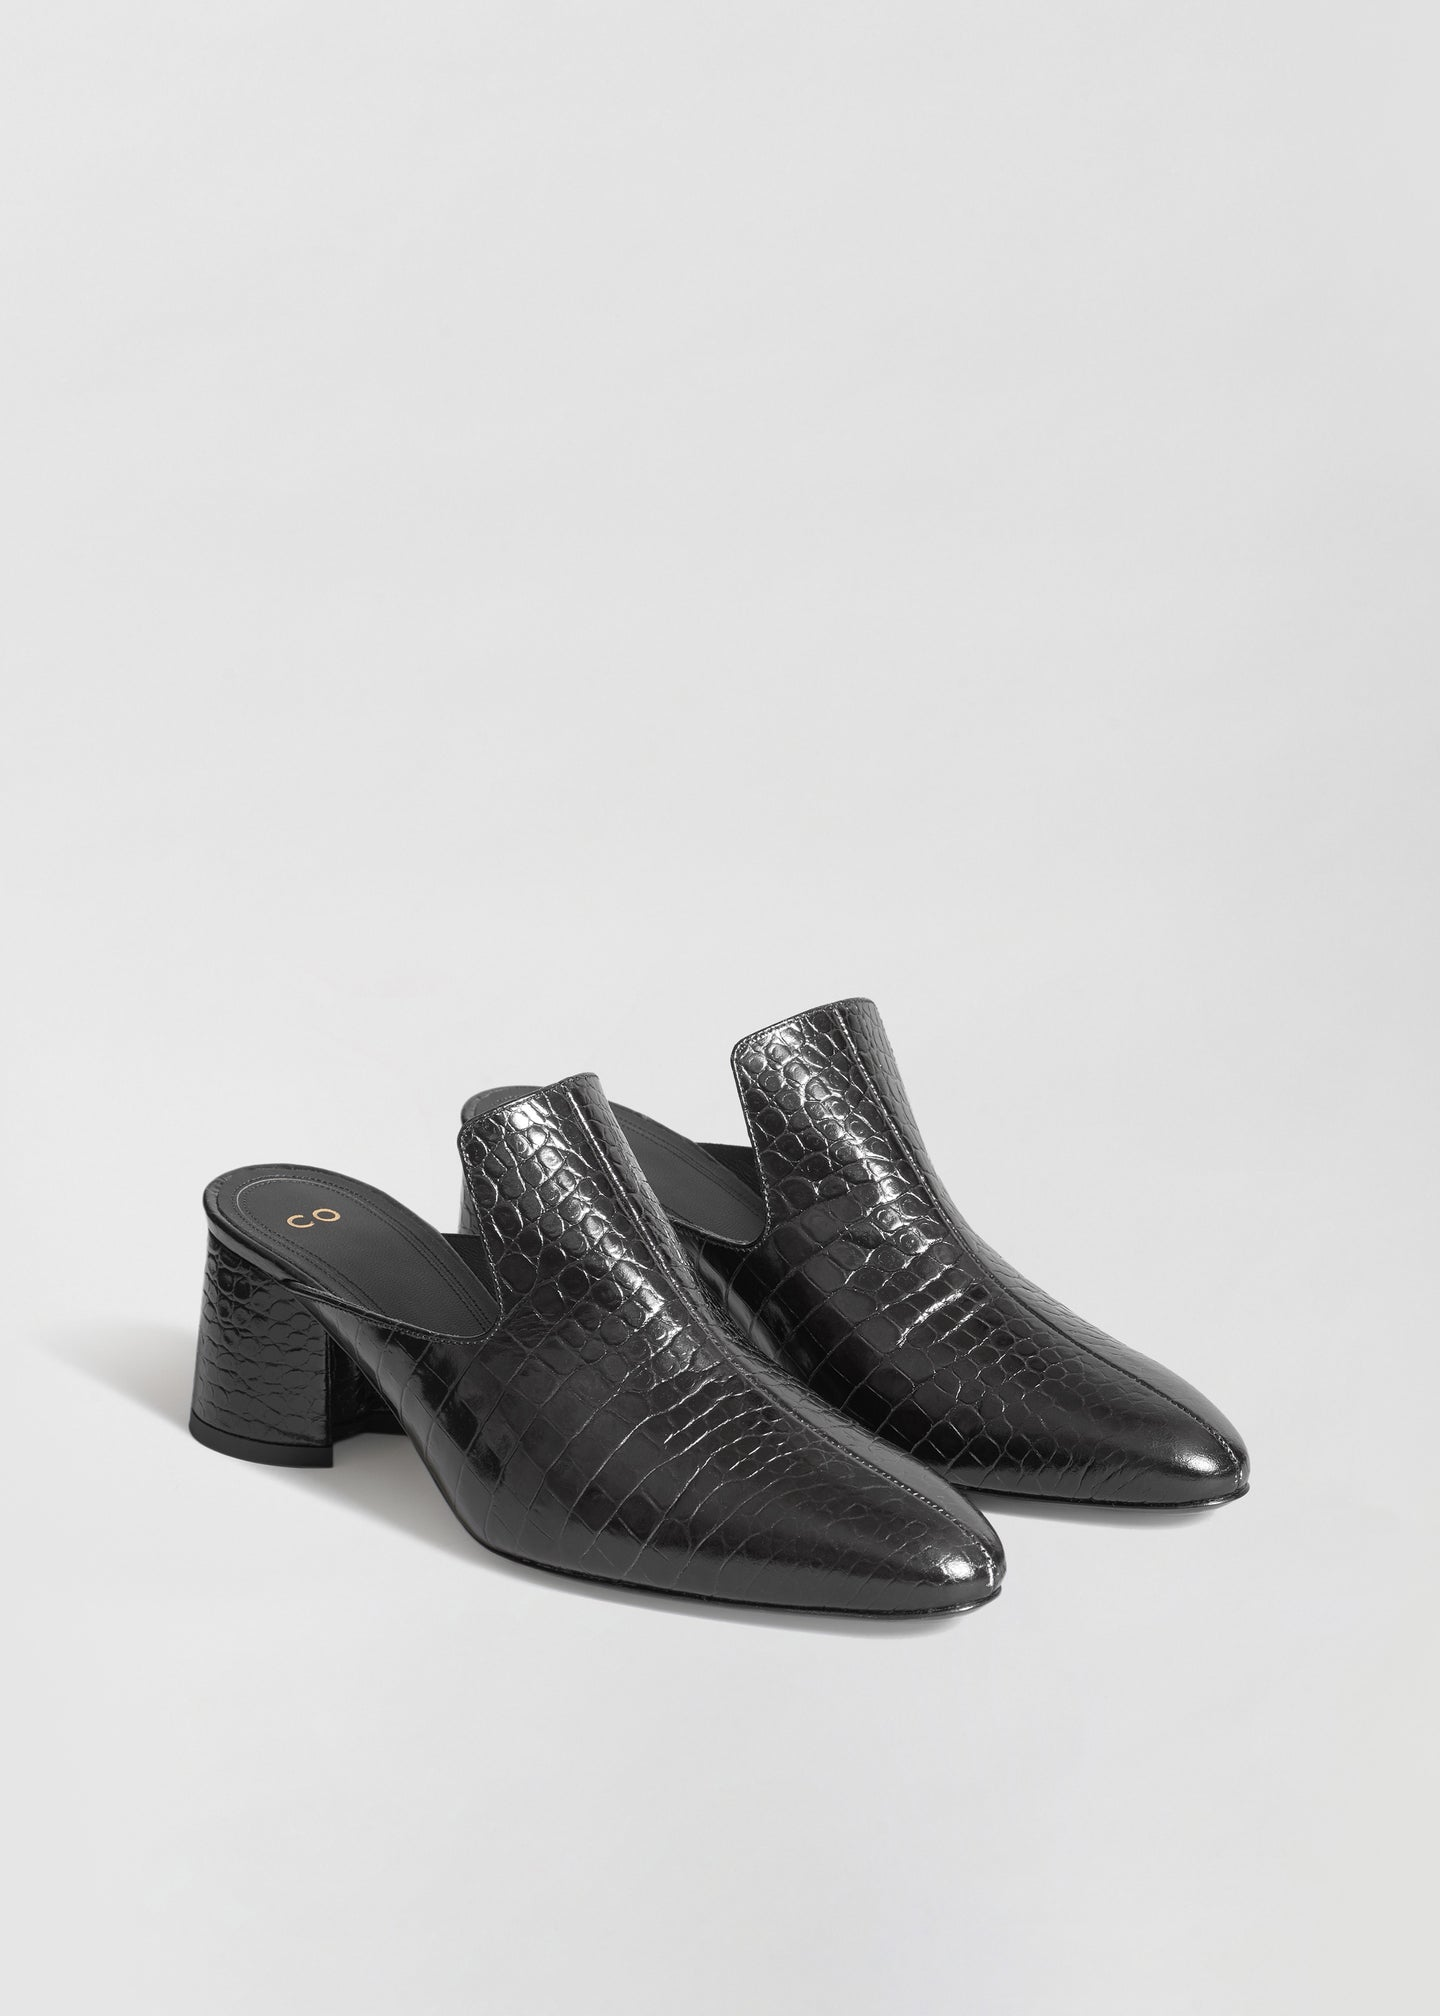 Mule in Embossed Leather - Black - CO